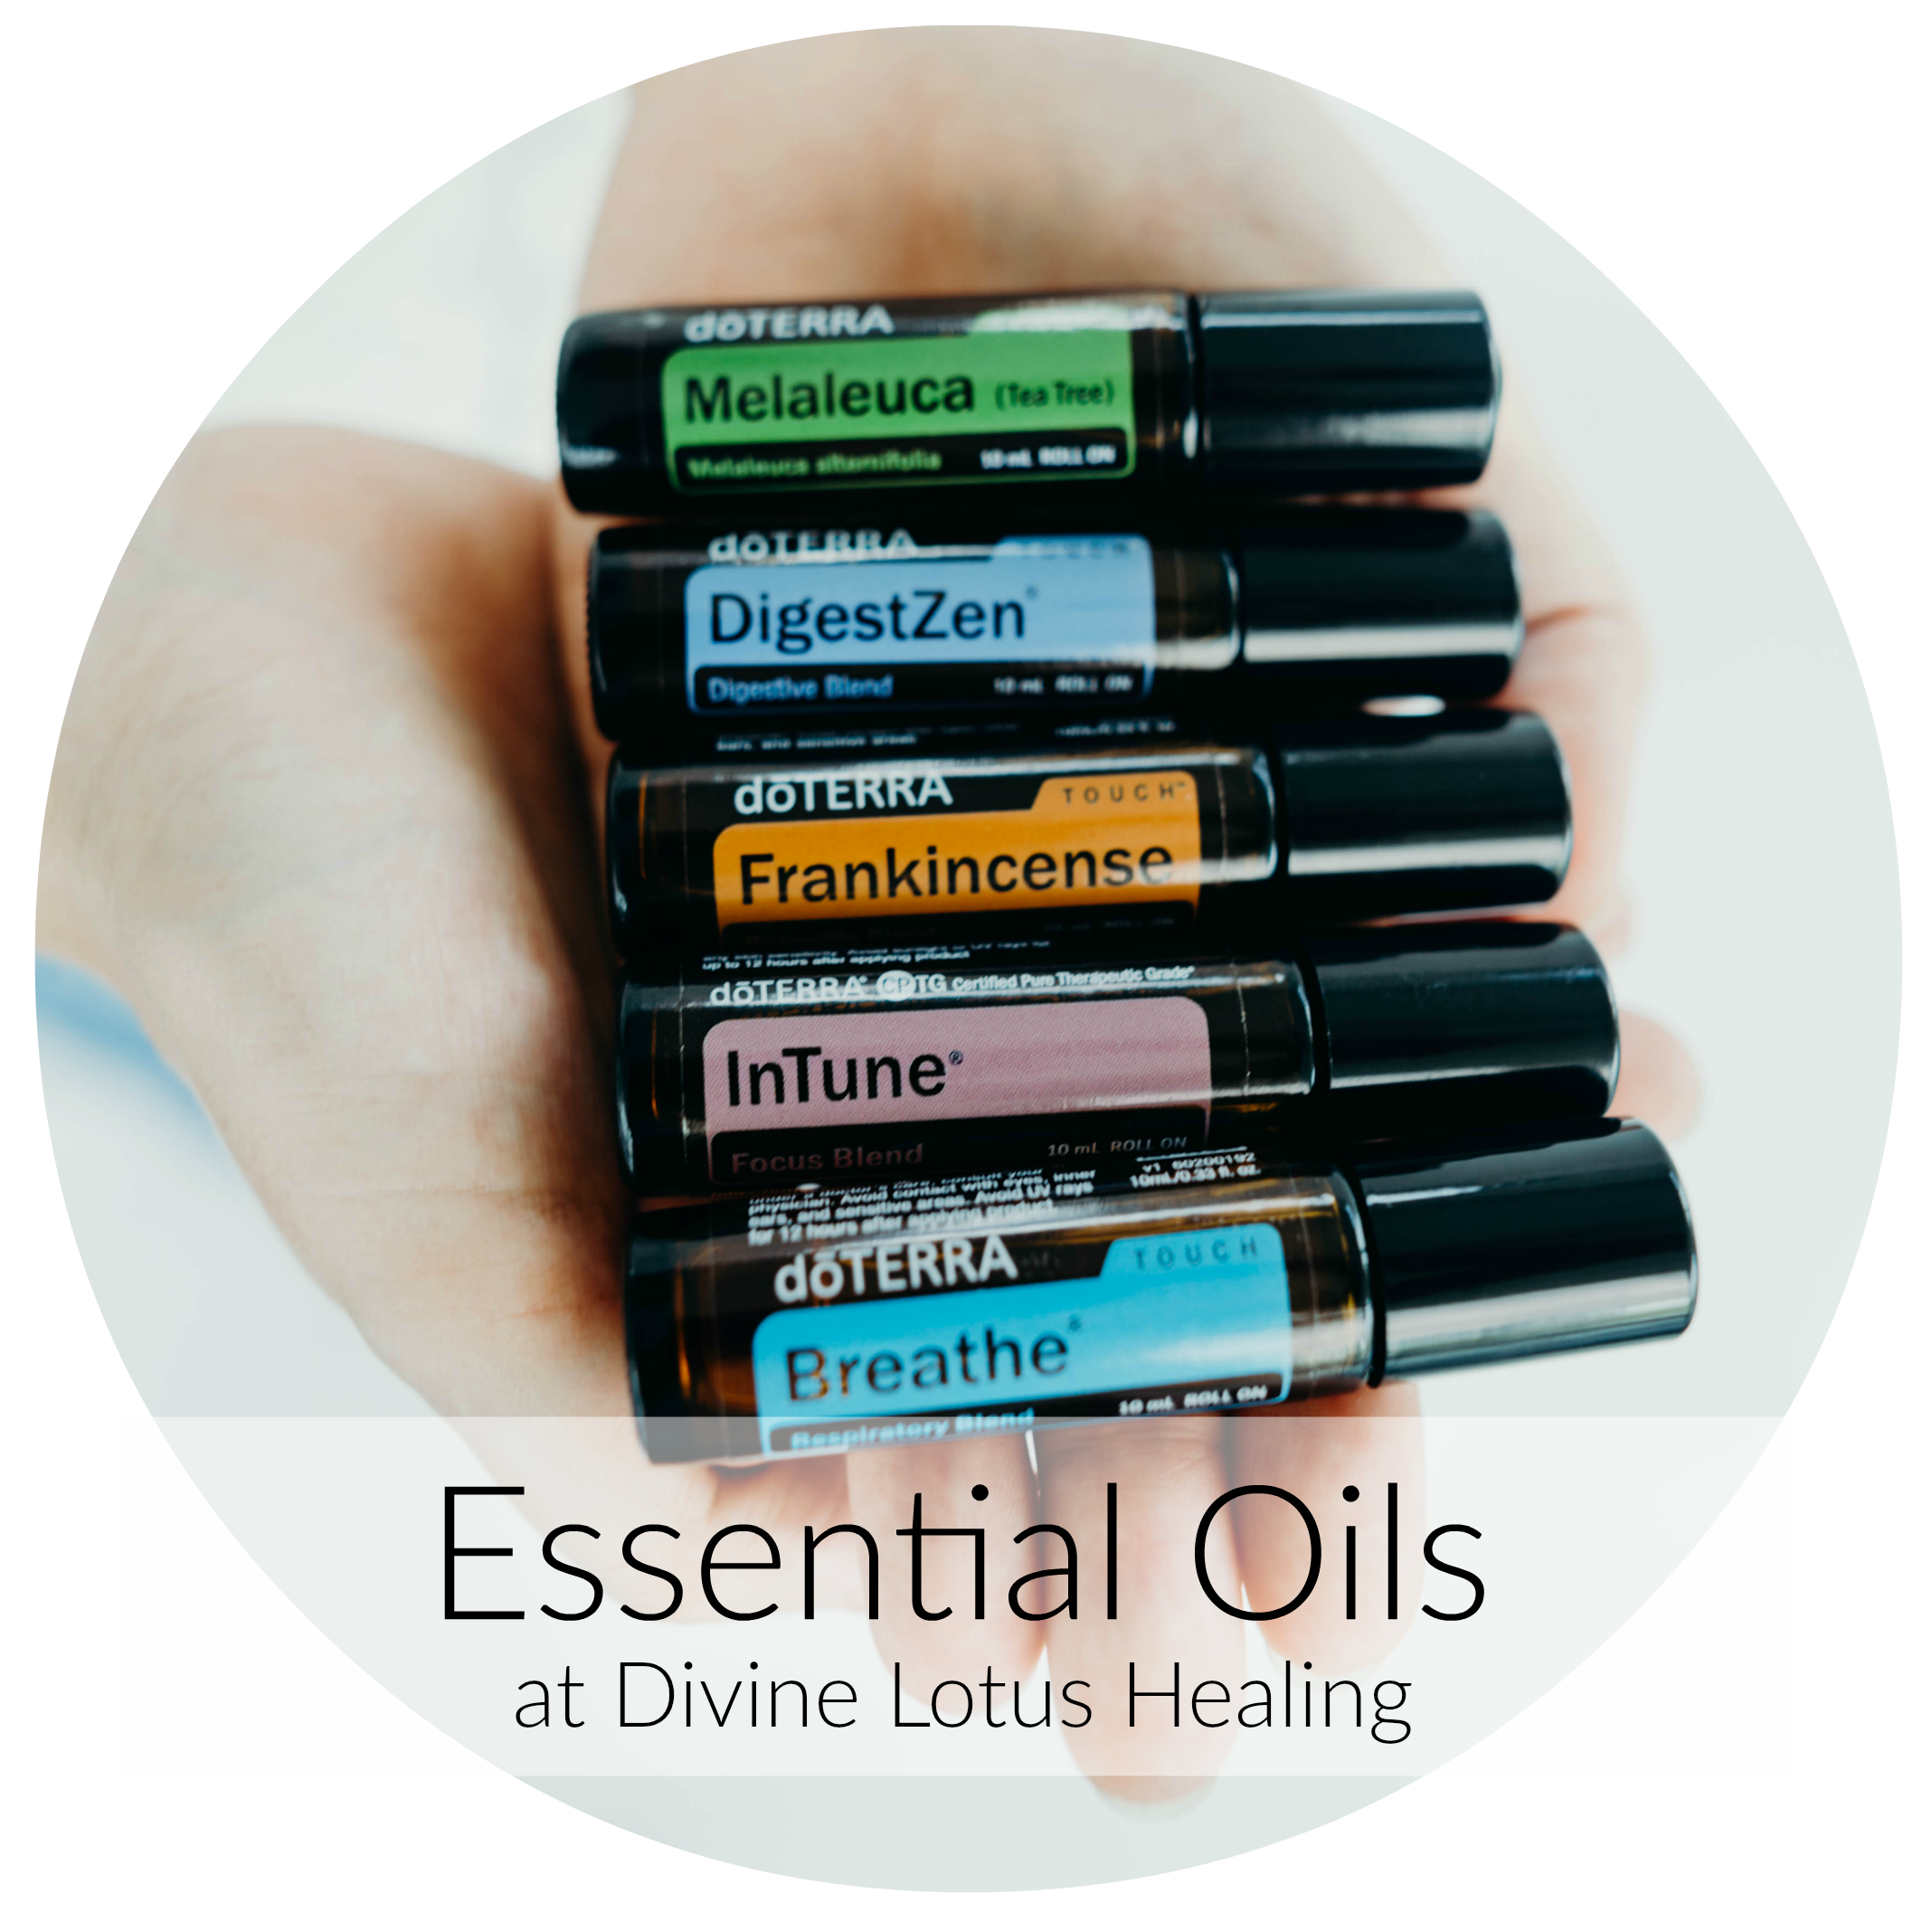 Divine Lotus Healing Essential Oils